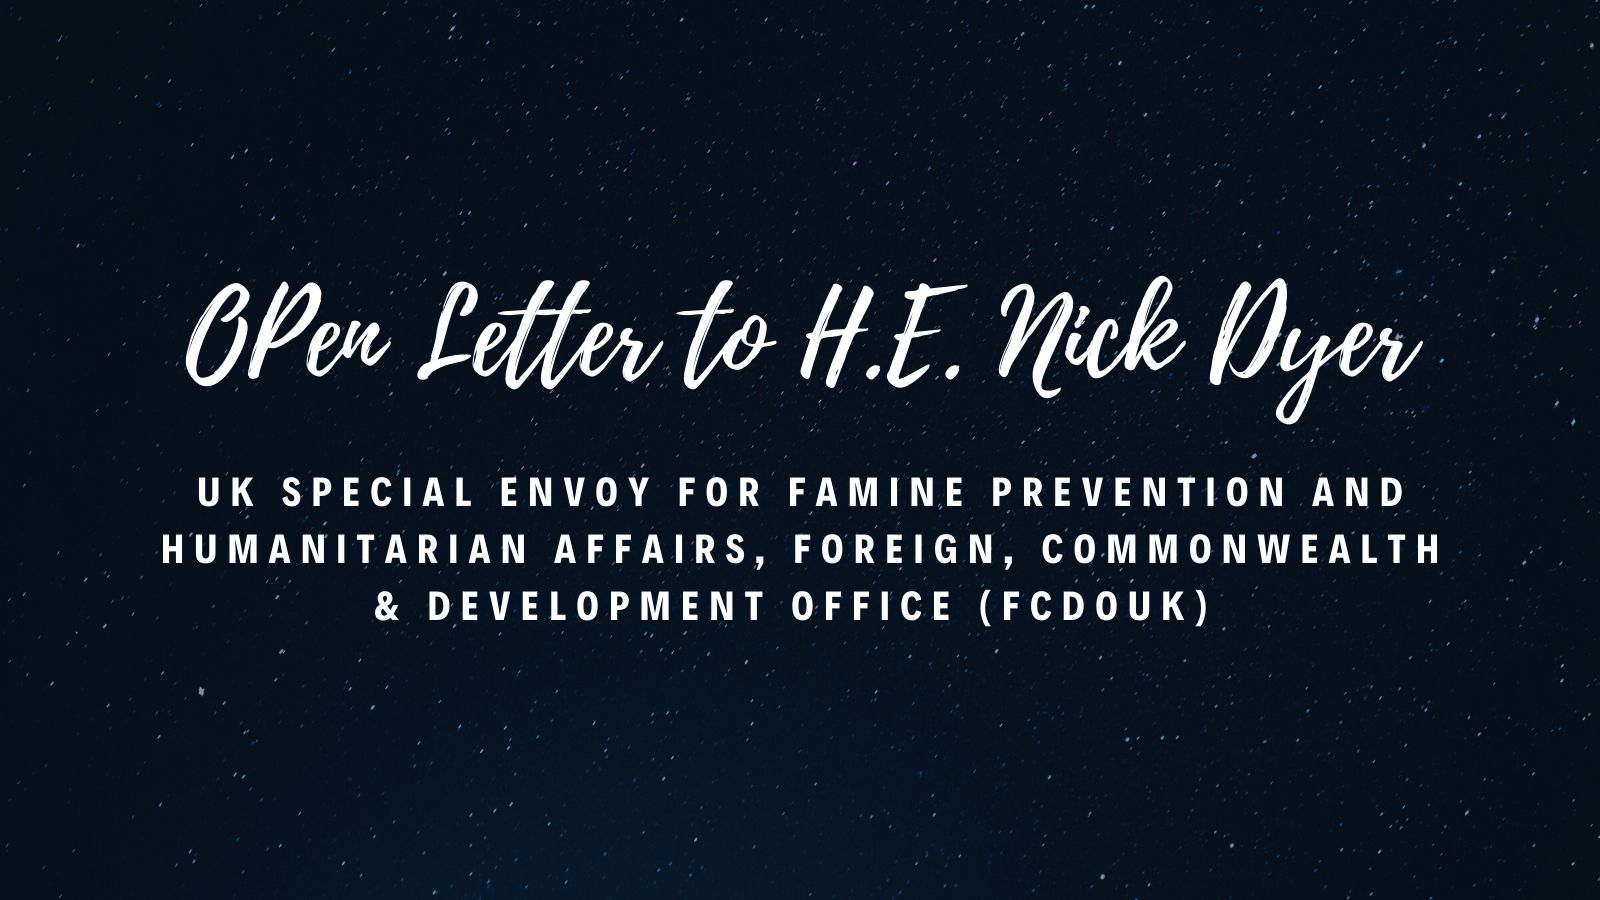 Open Letter to H.E. Nick Dyer, UK Special Envoy for Famine Prevention and Humanitarian Affairs, FCDO